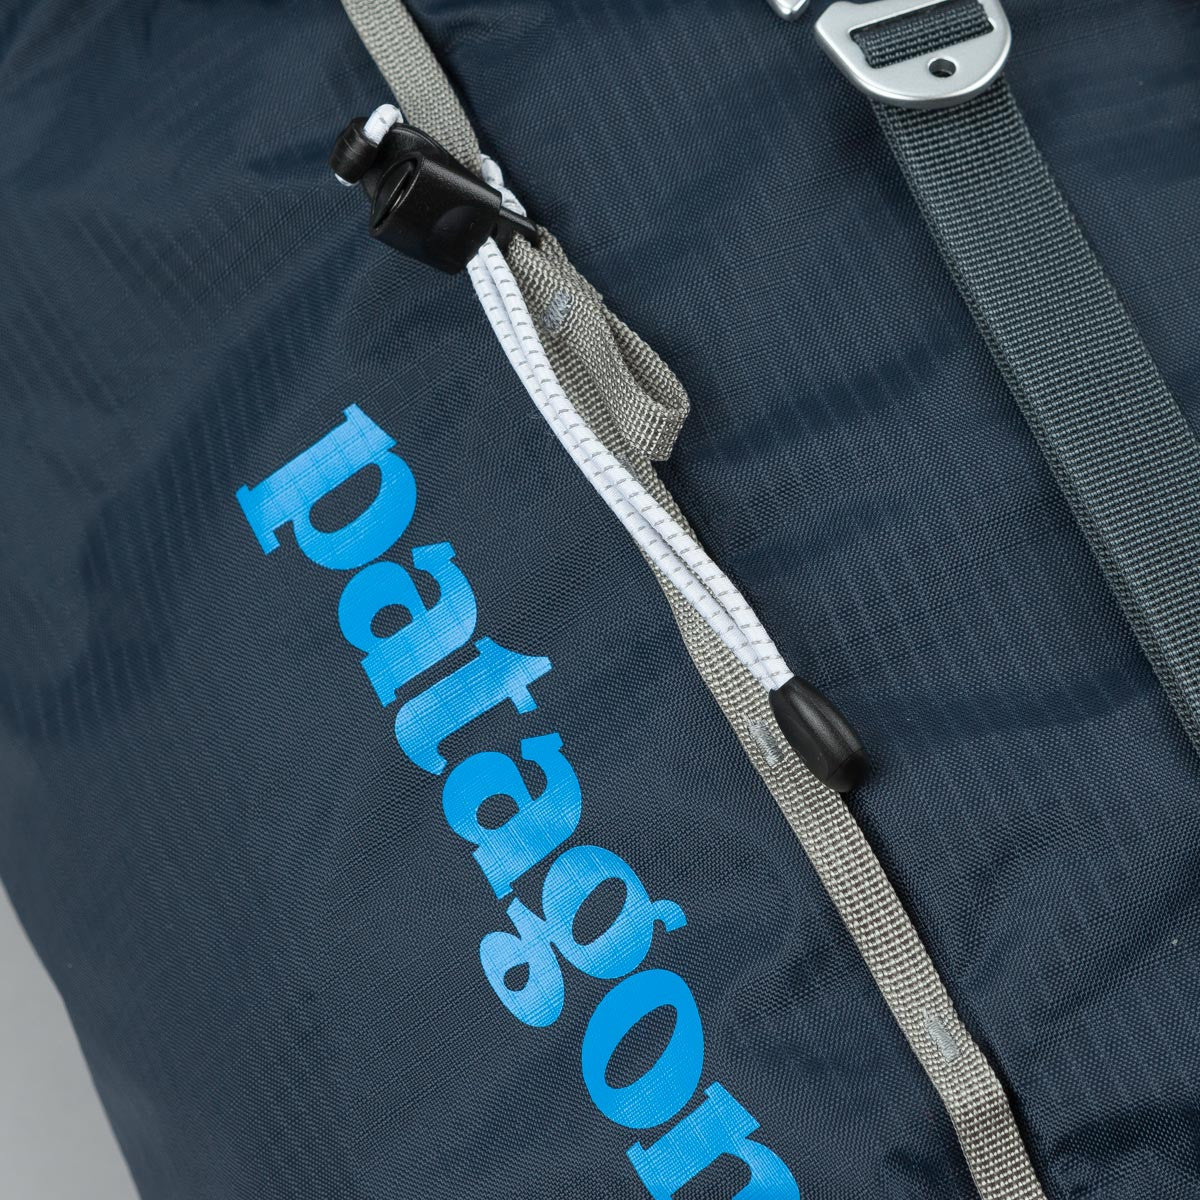 Patagonia Ascensionist Backpack 25L - Smolder Blue